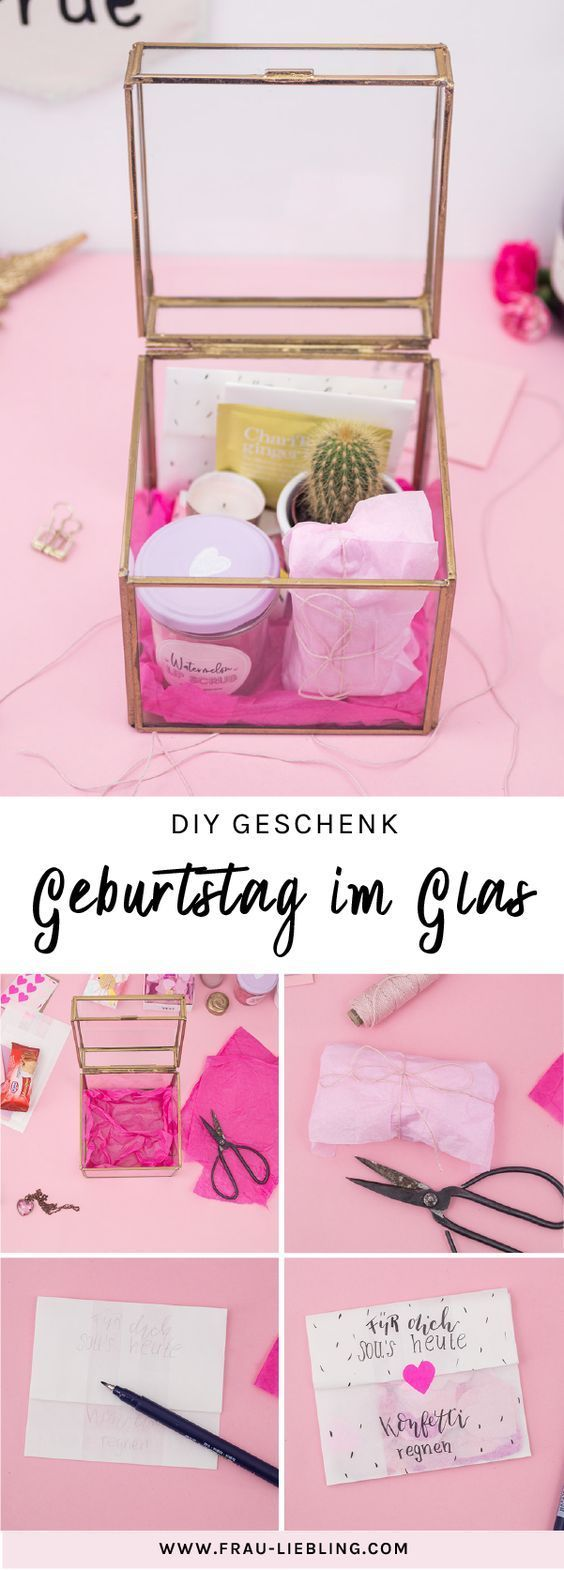 DIY Gift: Give a birthday in a glass originally